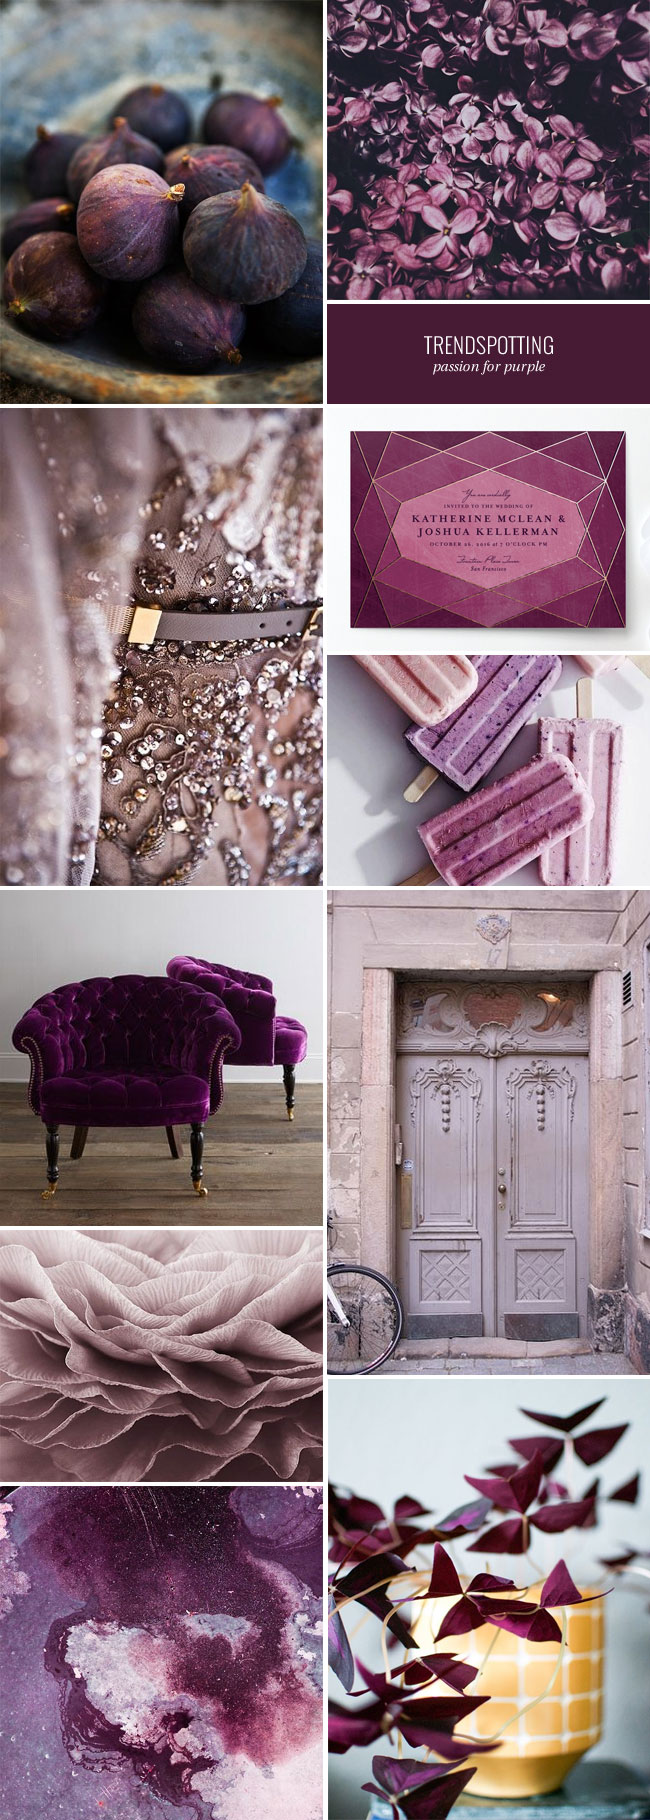 http://i0.wp.com/papercrave.com/wp-content/uploads/2015/11/trendspotting-passion-for-purple.jpg?resize=650%2C1820